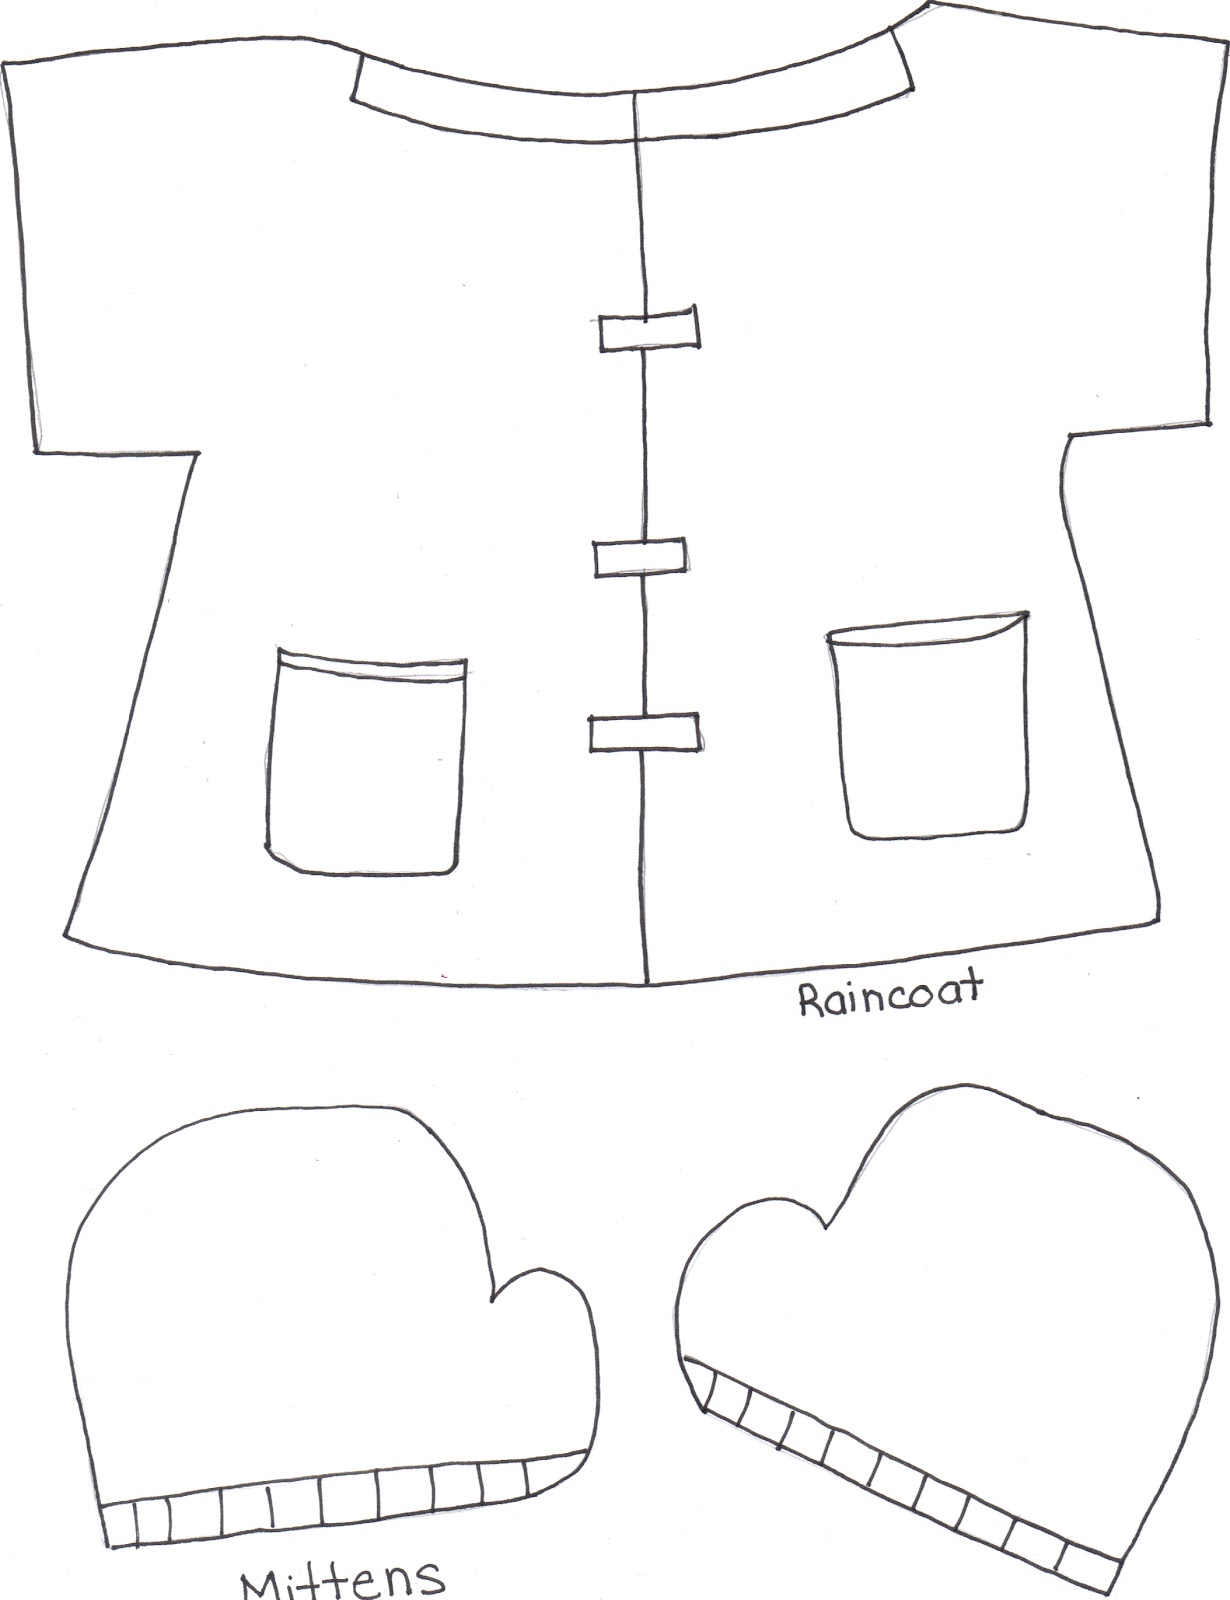 image regarding Printable Mitten Pattern known as Mitten Drawing Routine at  No cost for